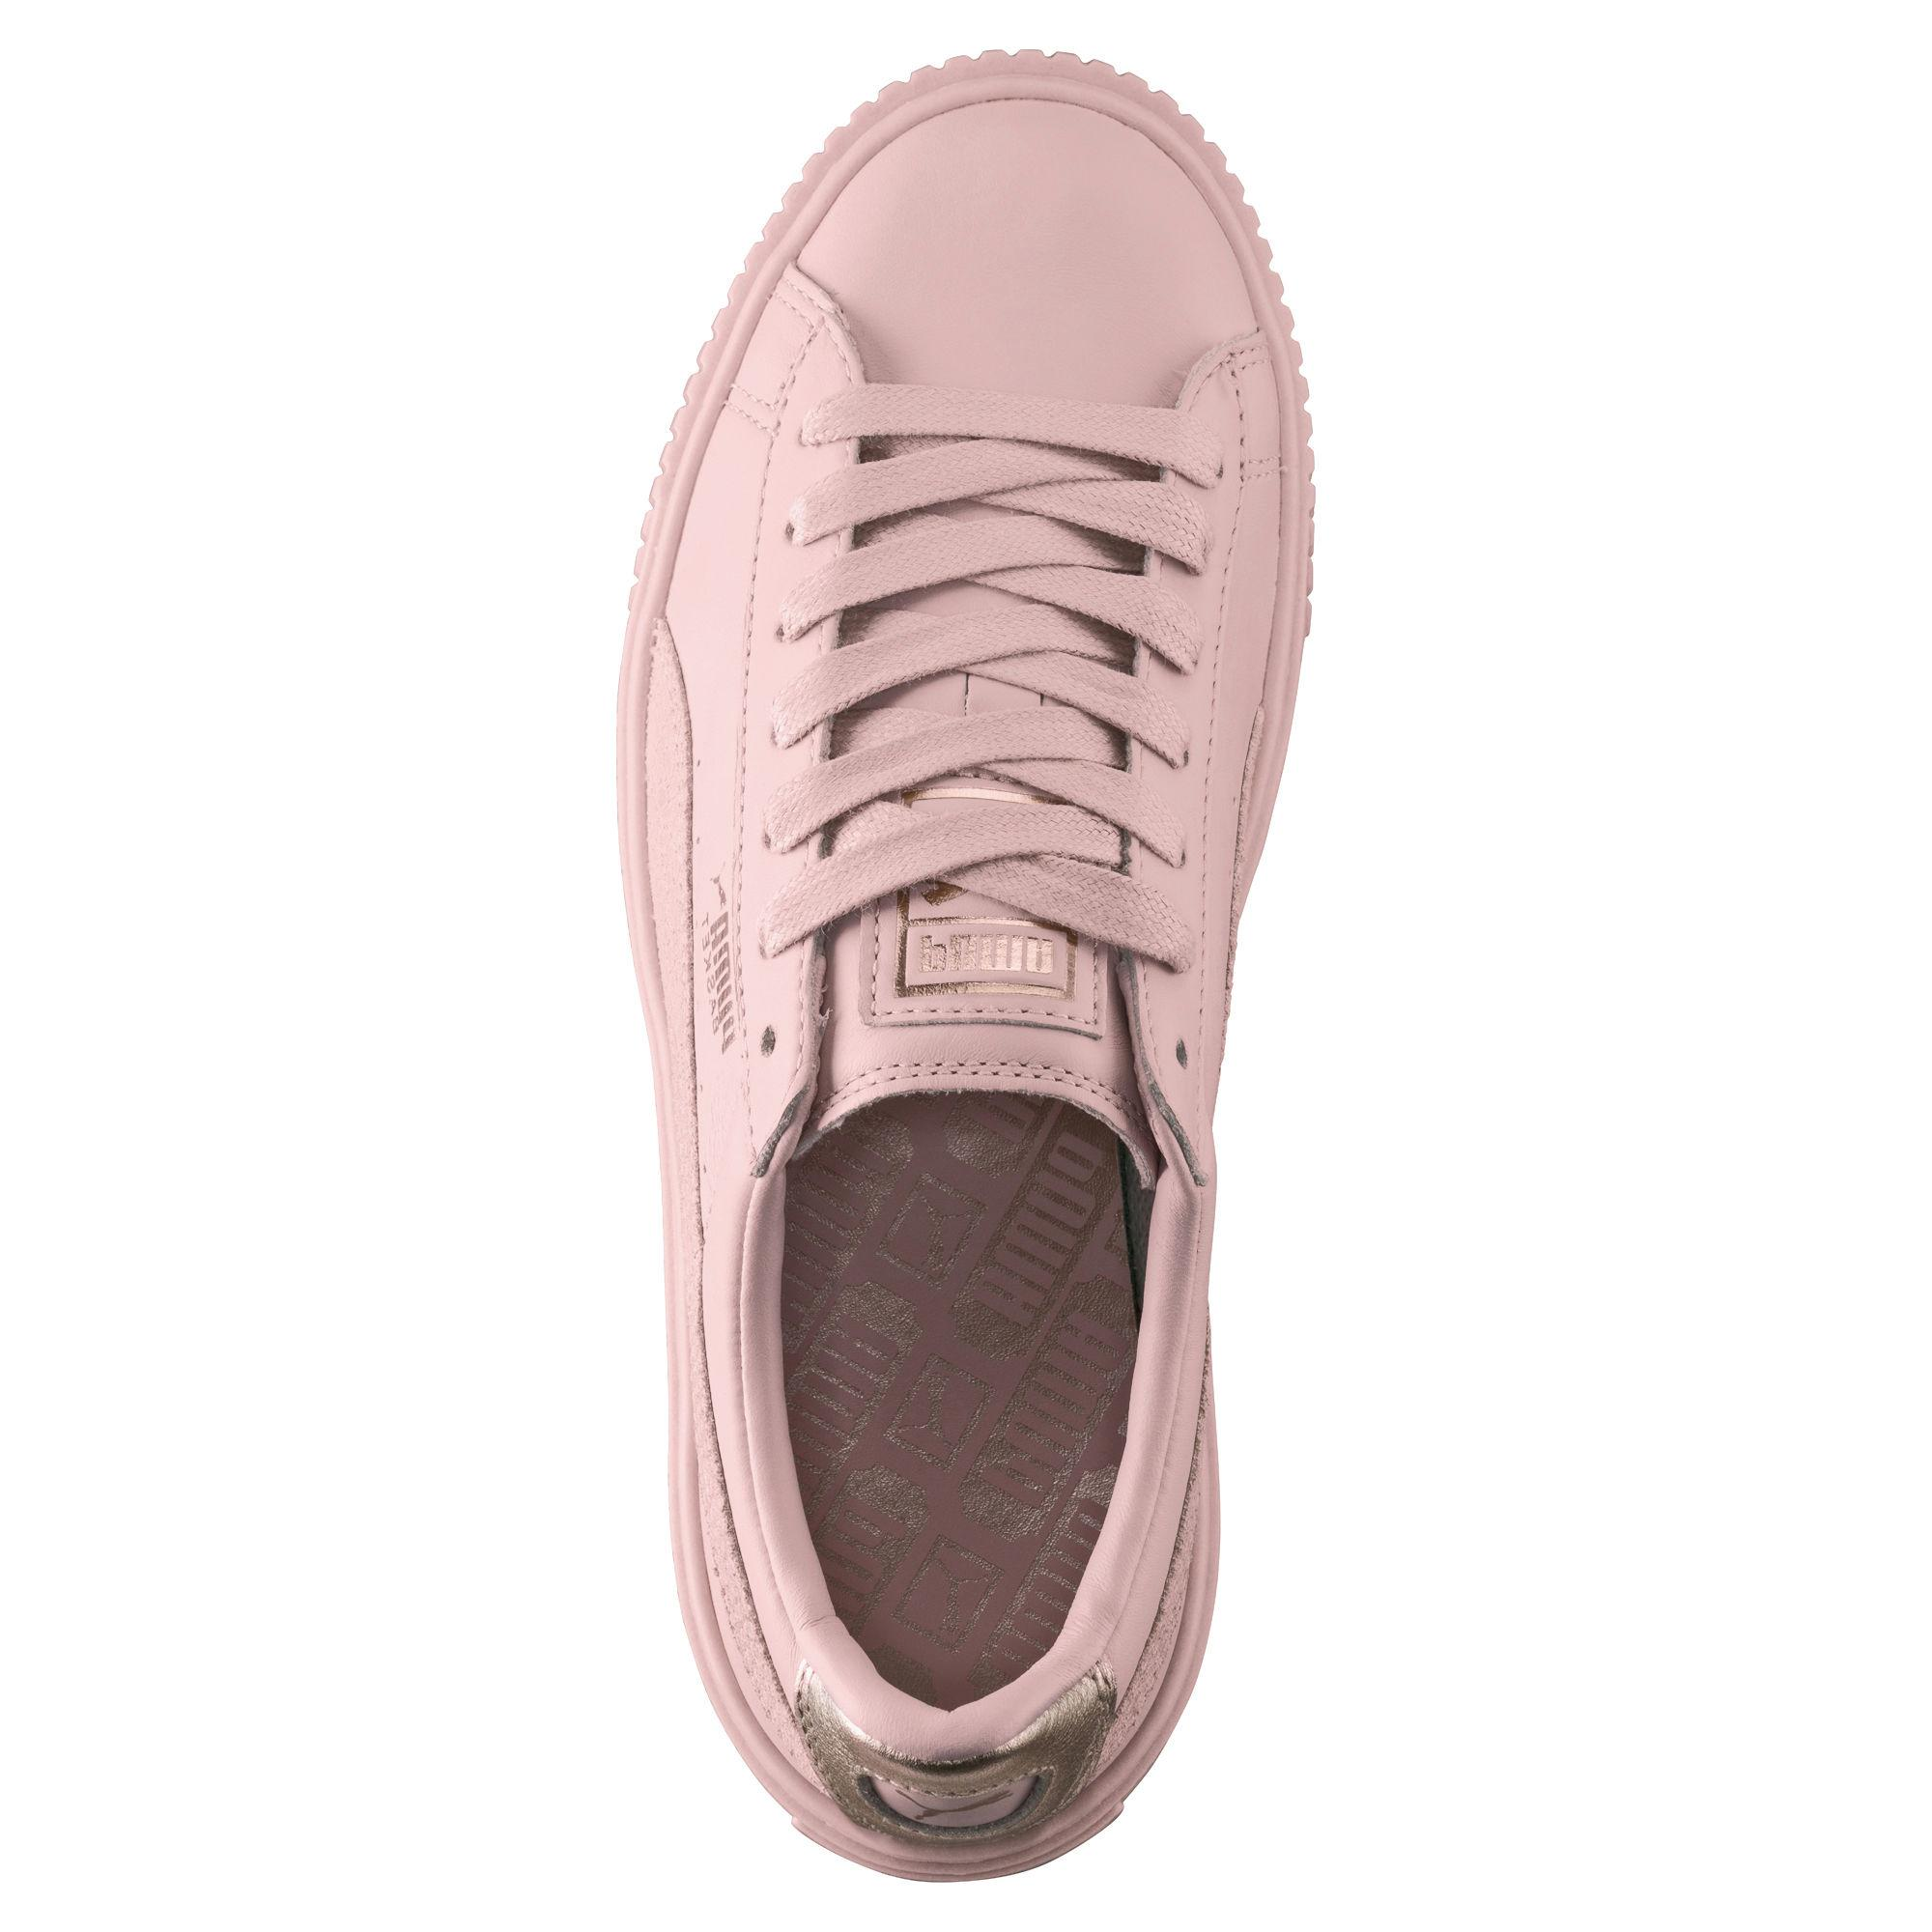 new arrival a505e 3d729 Puma Shoes Basket Platform Euphoria RG Woman